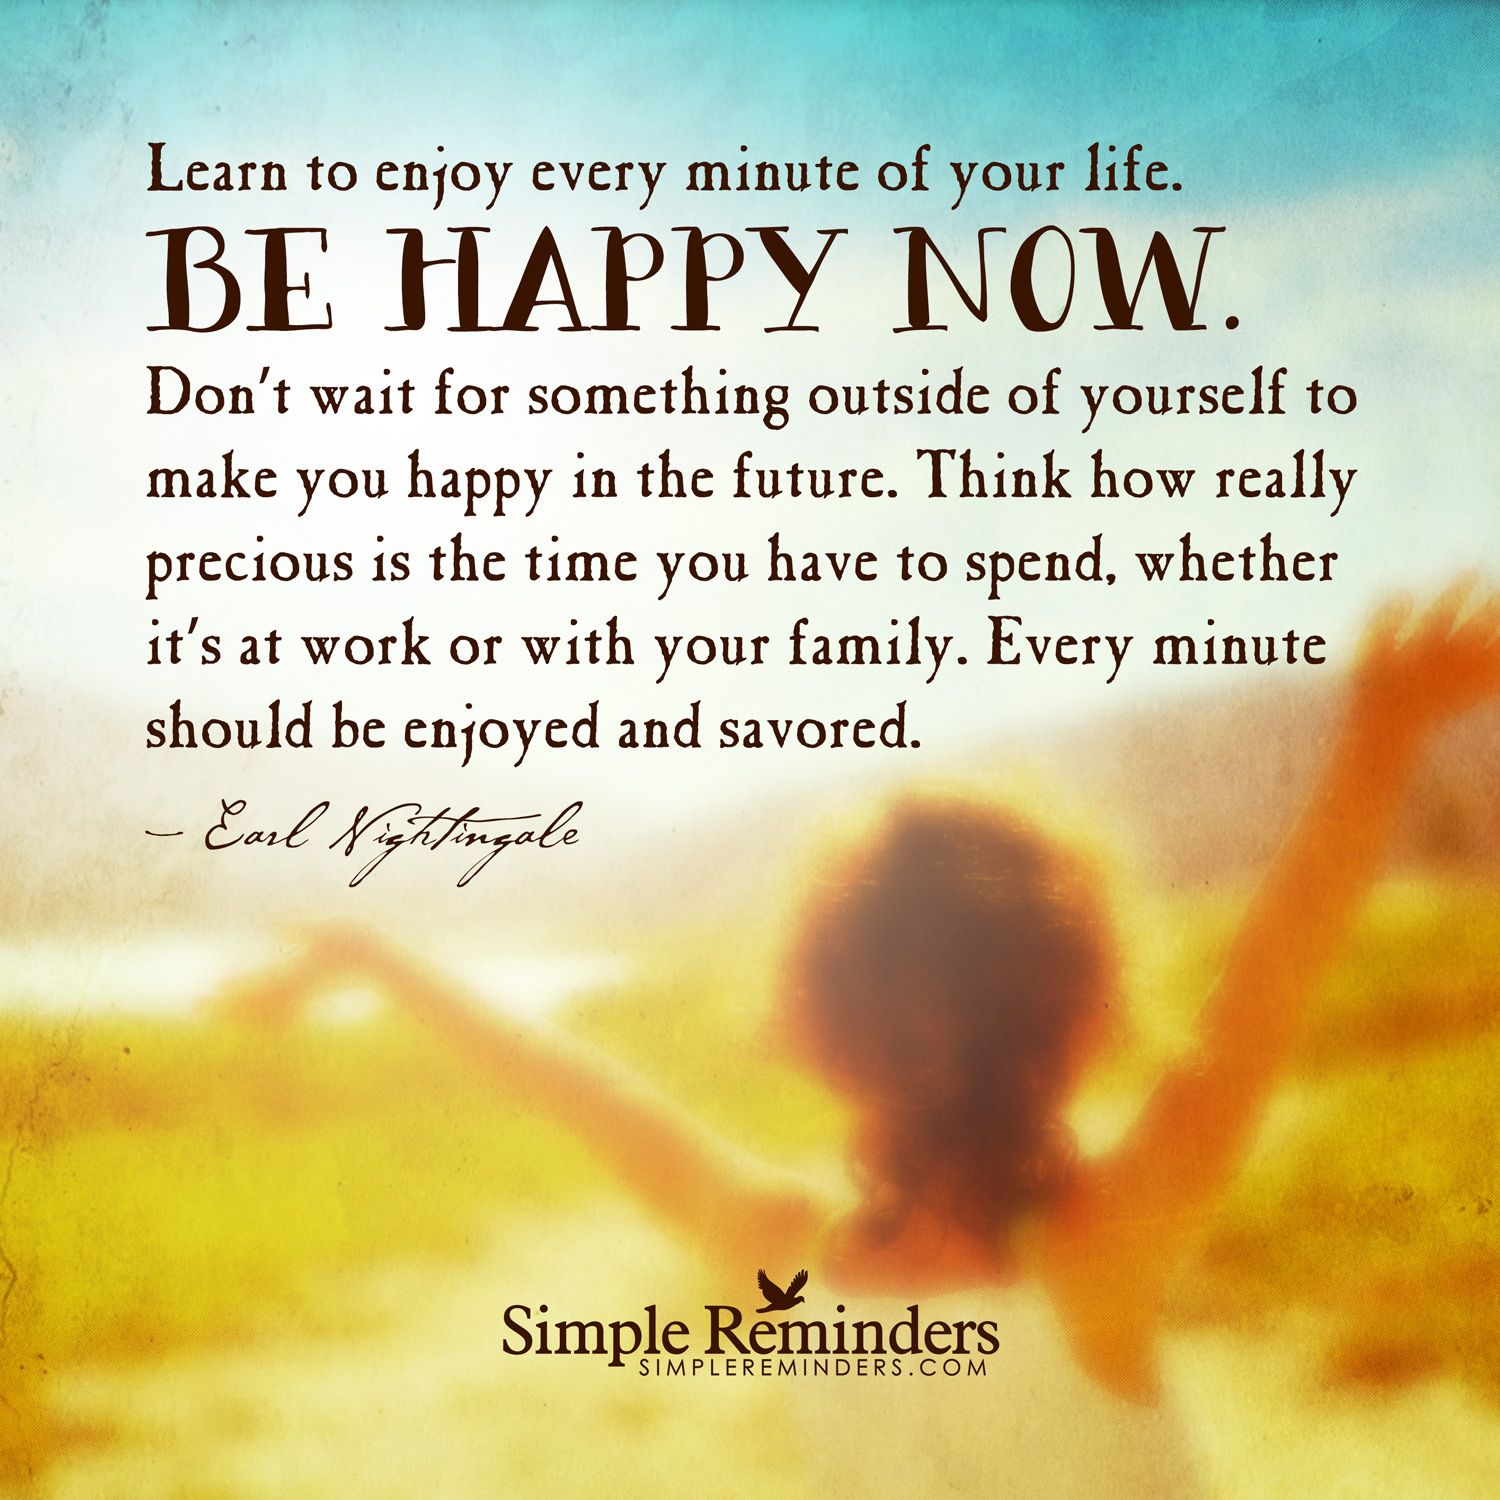 Be happy now by Earl Nightingale